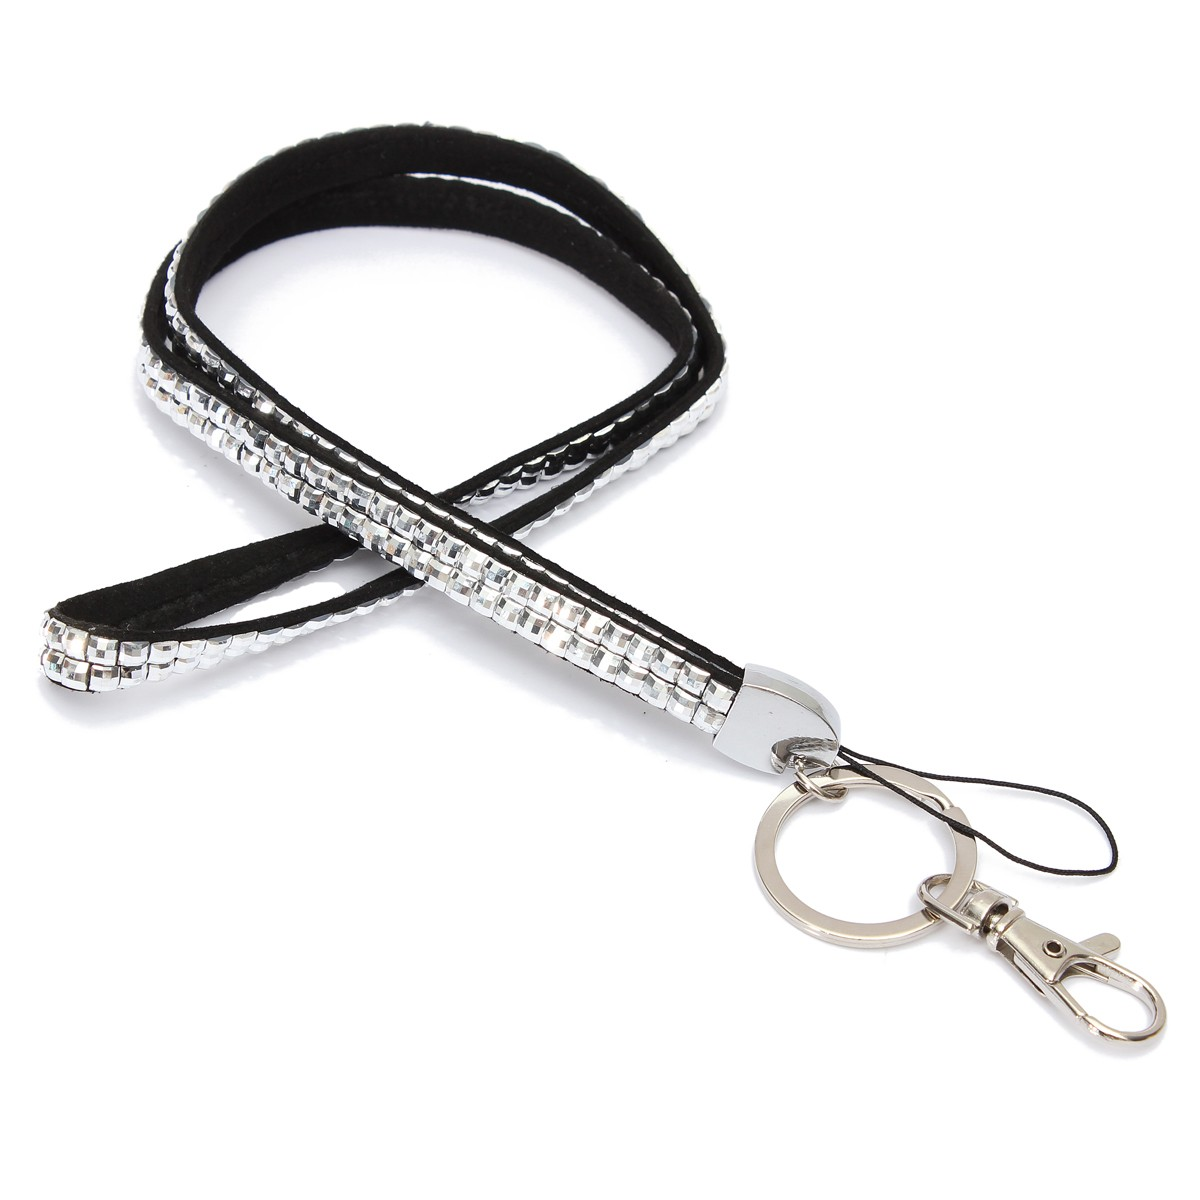 Rhinestone Lanyards Manufacturers, Rhinestone Lanyards Factory, Supply Rhinestone Lanyards